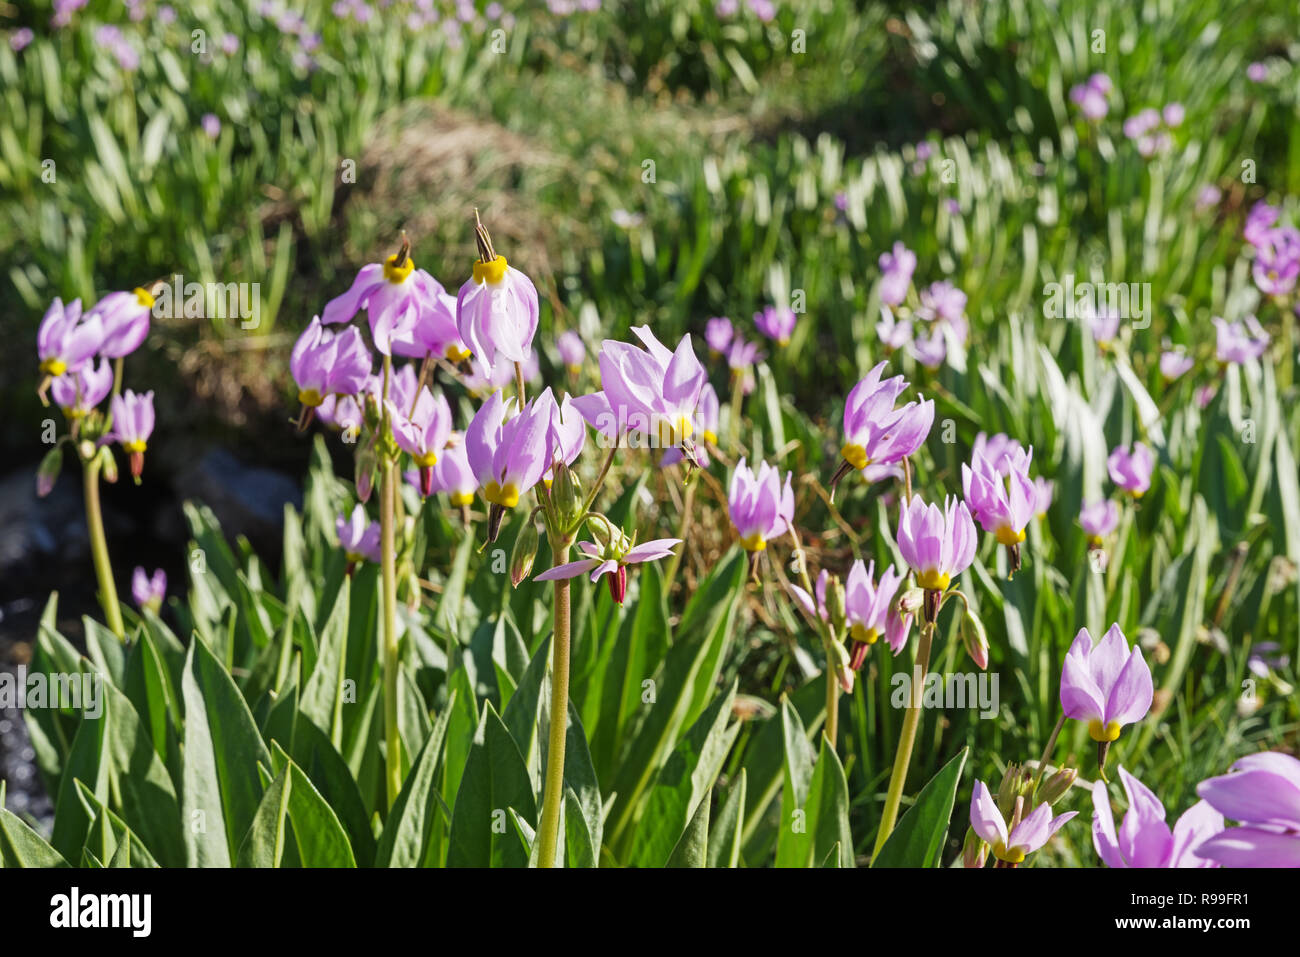 Sierra Shooting Star or Dodecatheon jeffreyi flowering in Kings Canyon National Park - Stock Image